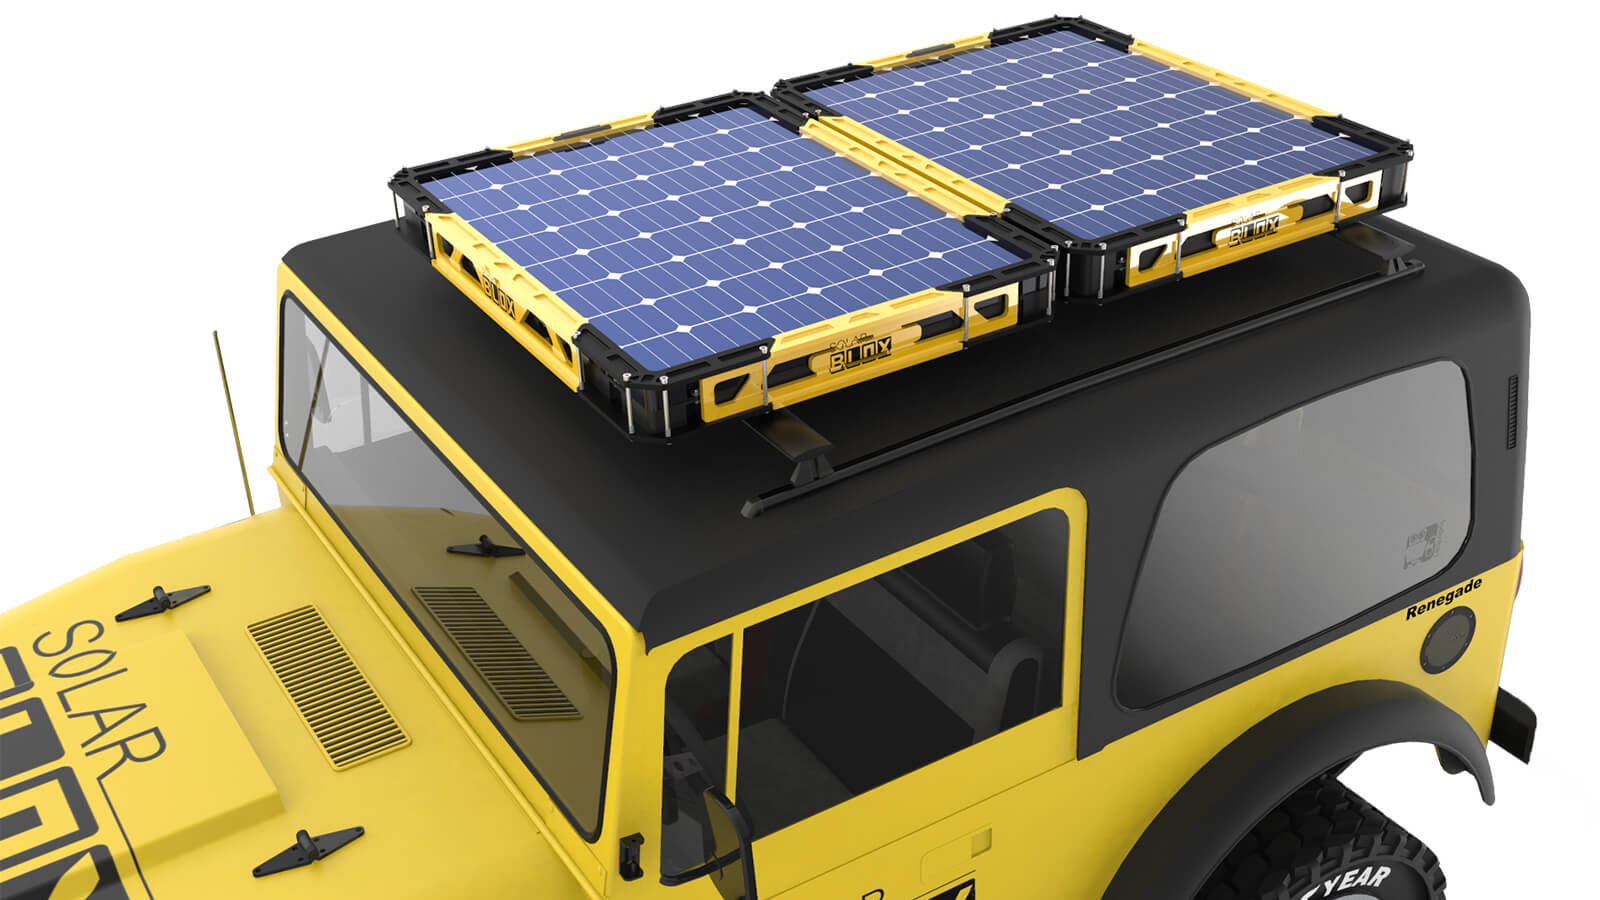 Solar Blox - is a product that is designed to put the power of solar energy into the hands of those that need it and can make the most use of it where they are - allowing people to solve their own energy problems quickly and simply.